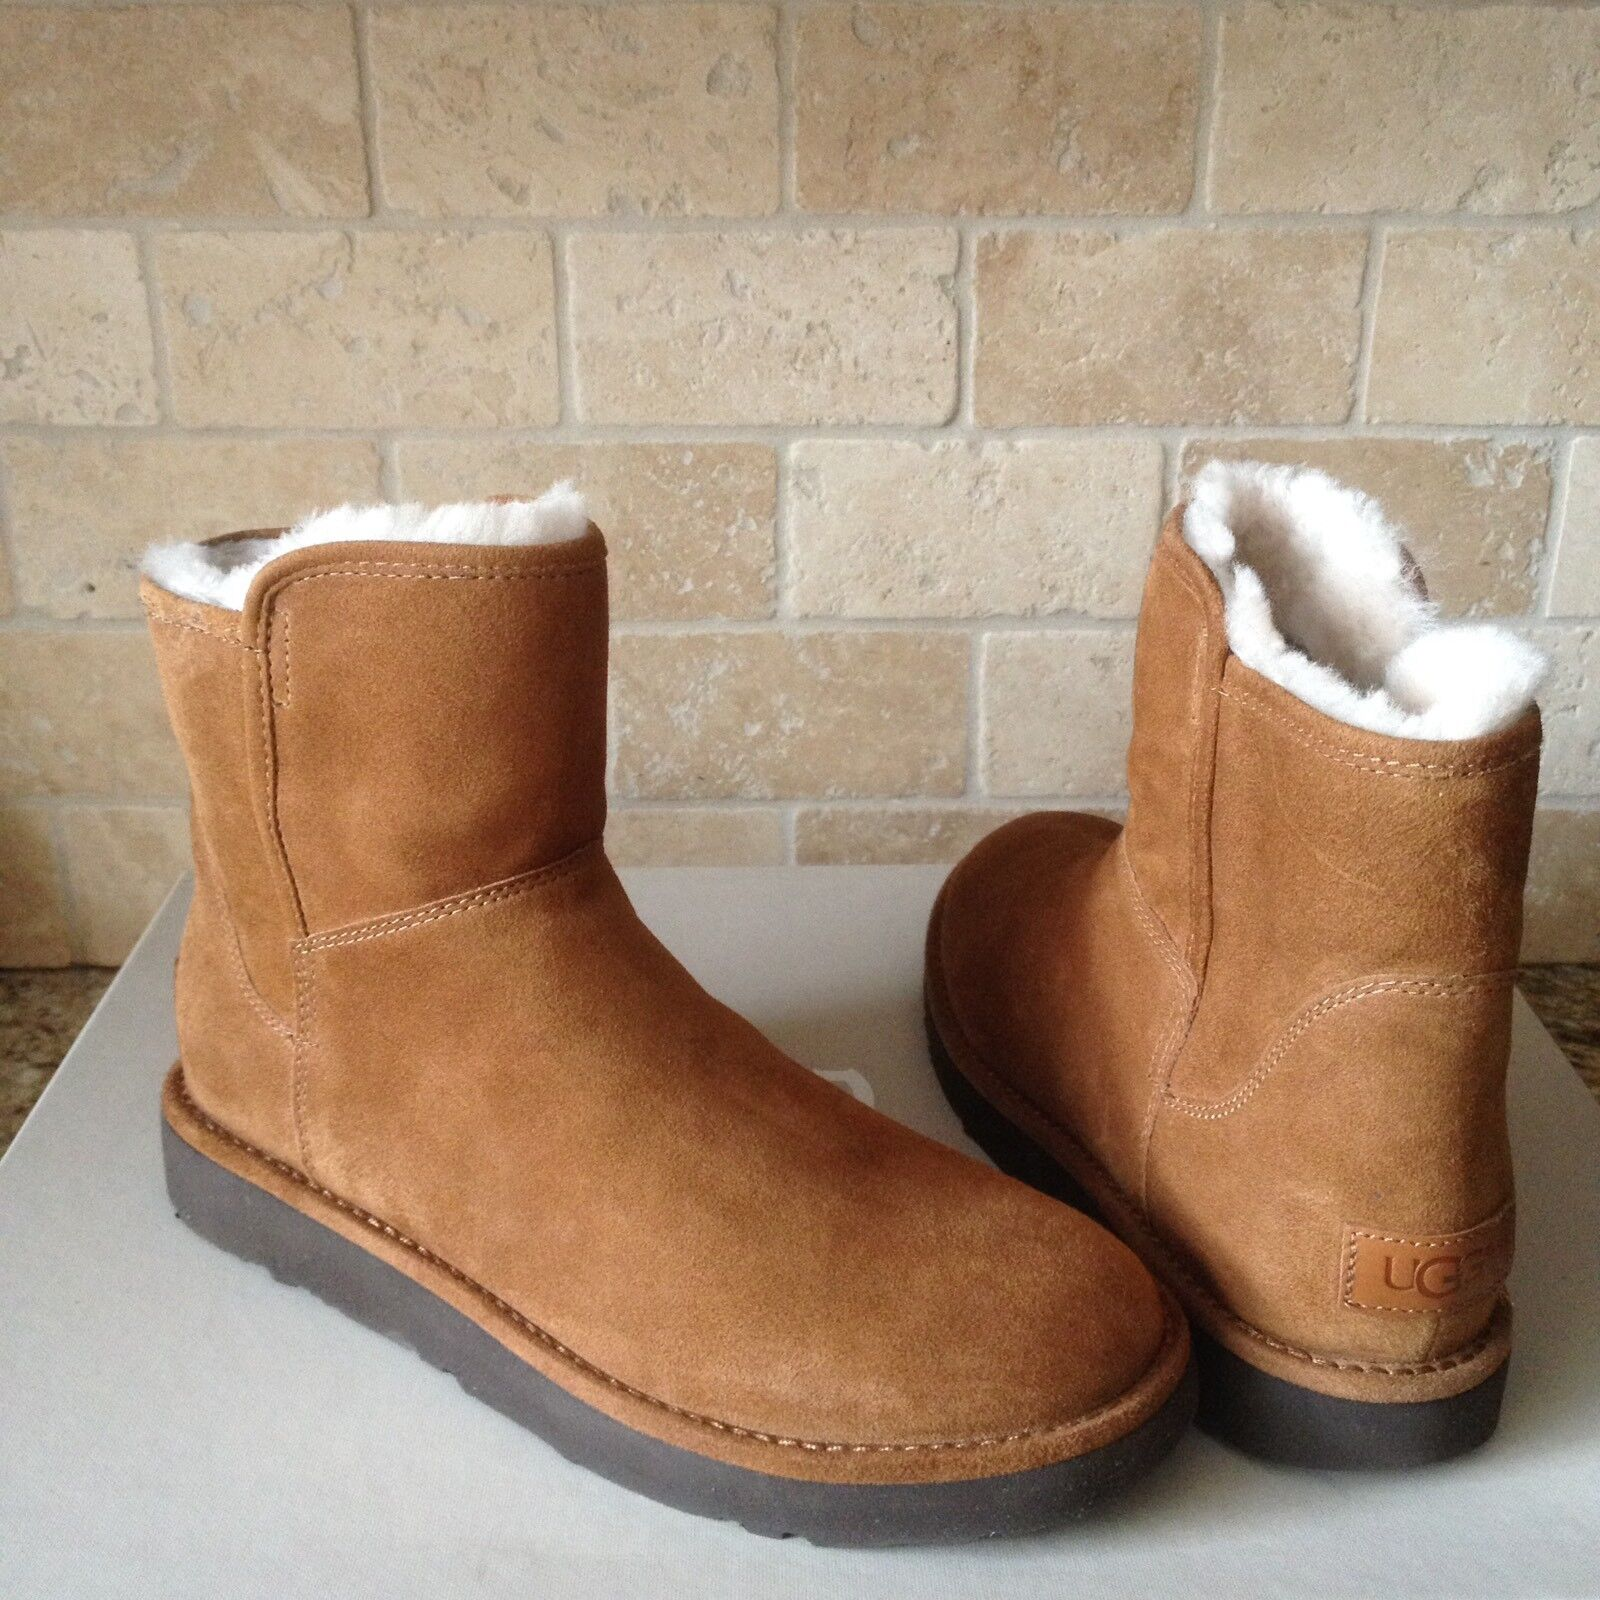 UGG ABREE MINI BRUNO / BROWN SUEDE SHEARLING ZIP BOTAS TAMAÑO US 7 MUJERES 1016548